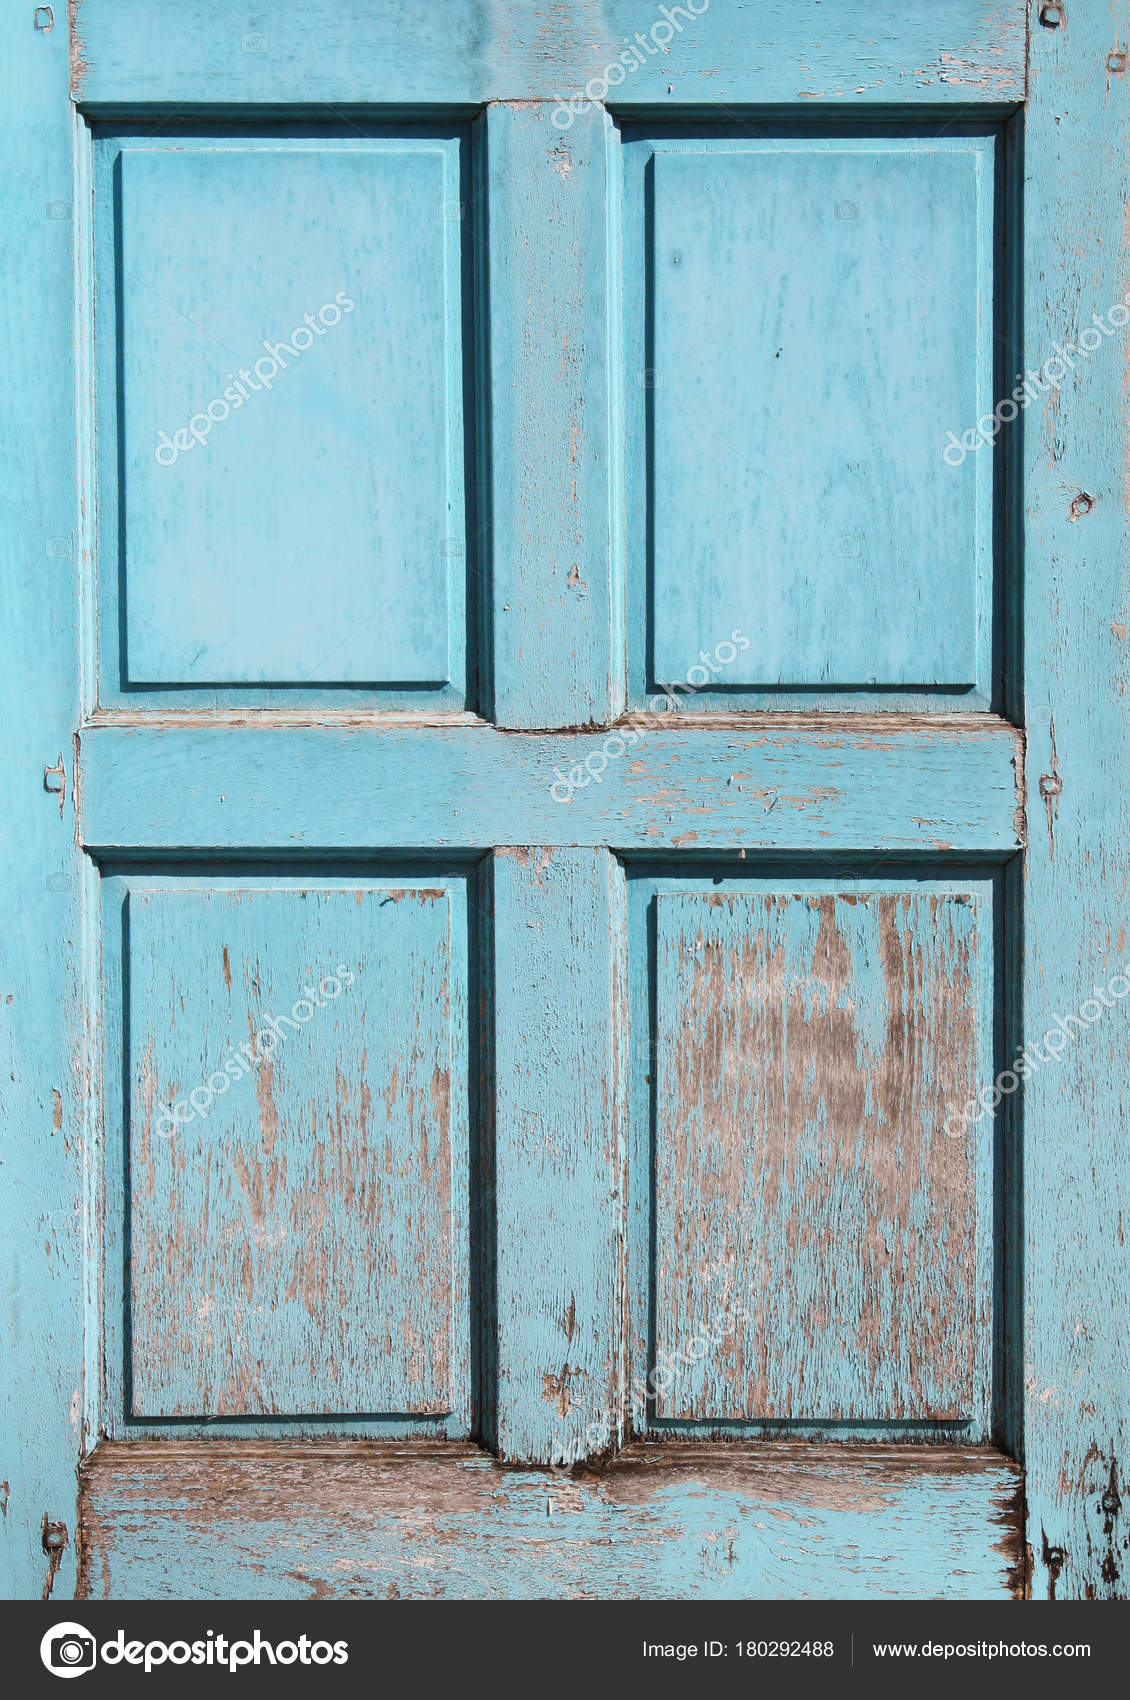 Wooden Shutter With Cracked Paint Of Blue Color Stock